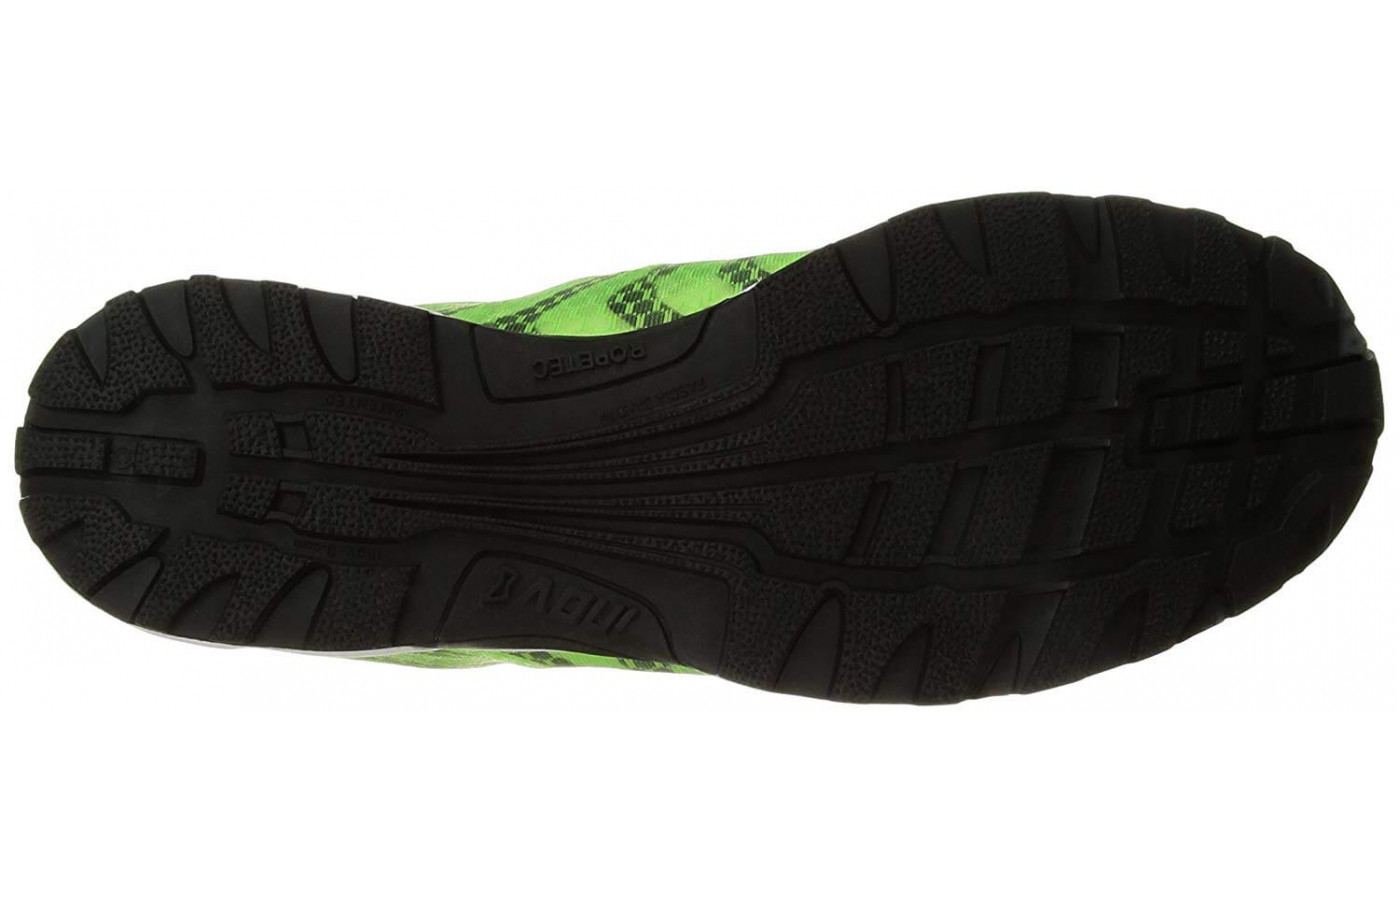 Inov-8 F-Lite 195 V2 bottom